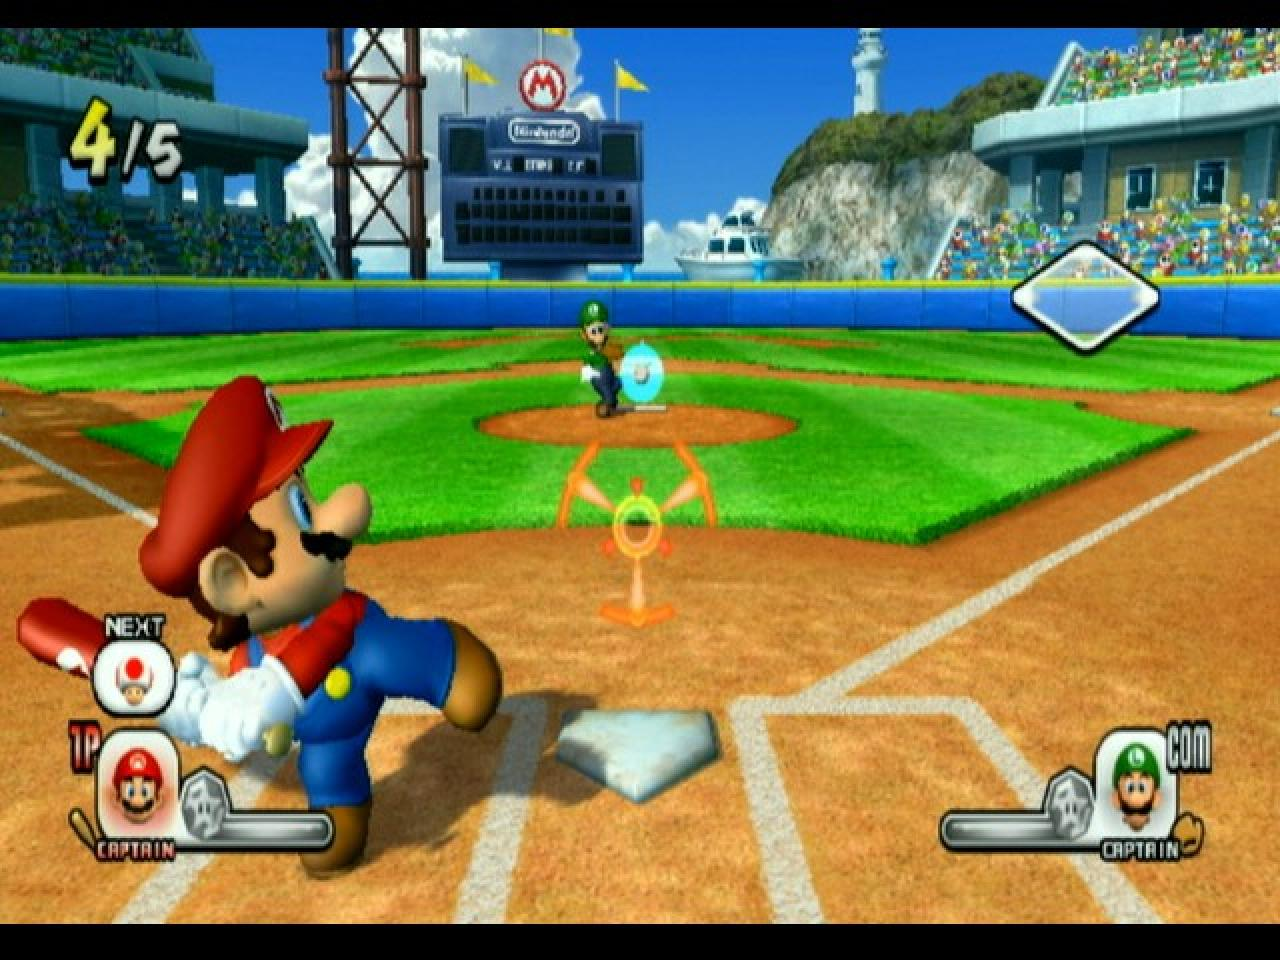 [11/07/08] Super Mario Stadium: Family Baseball - Wii